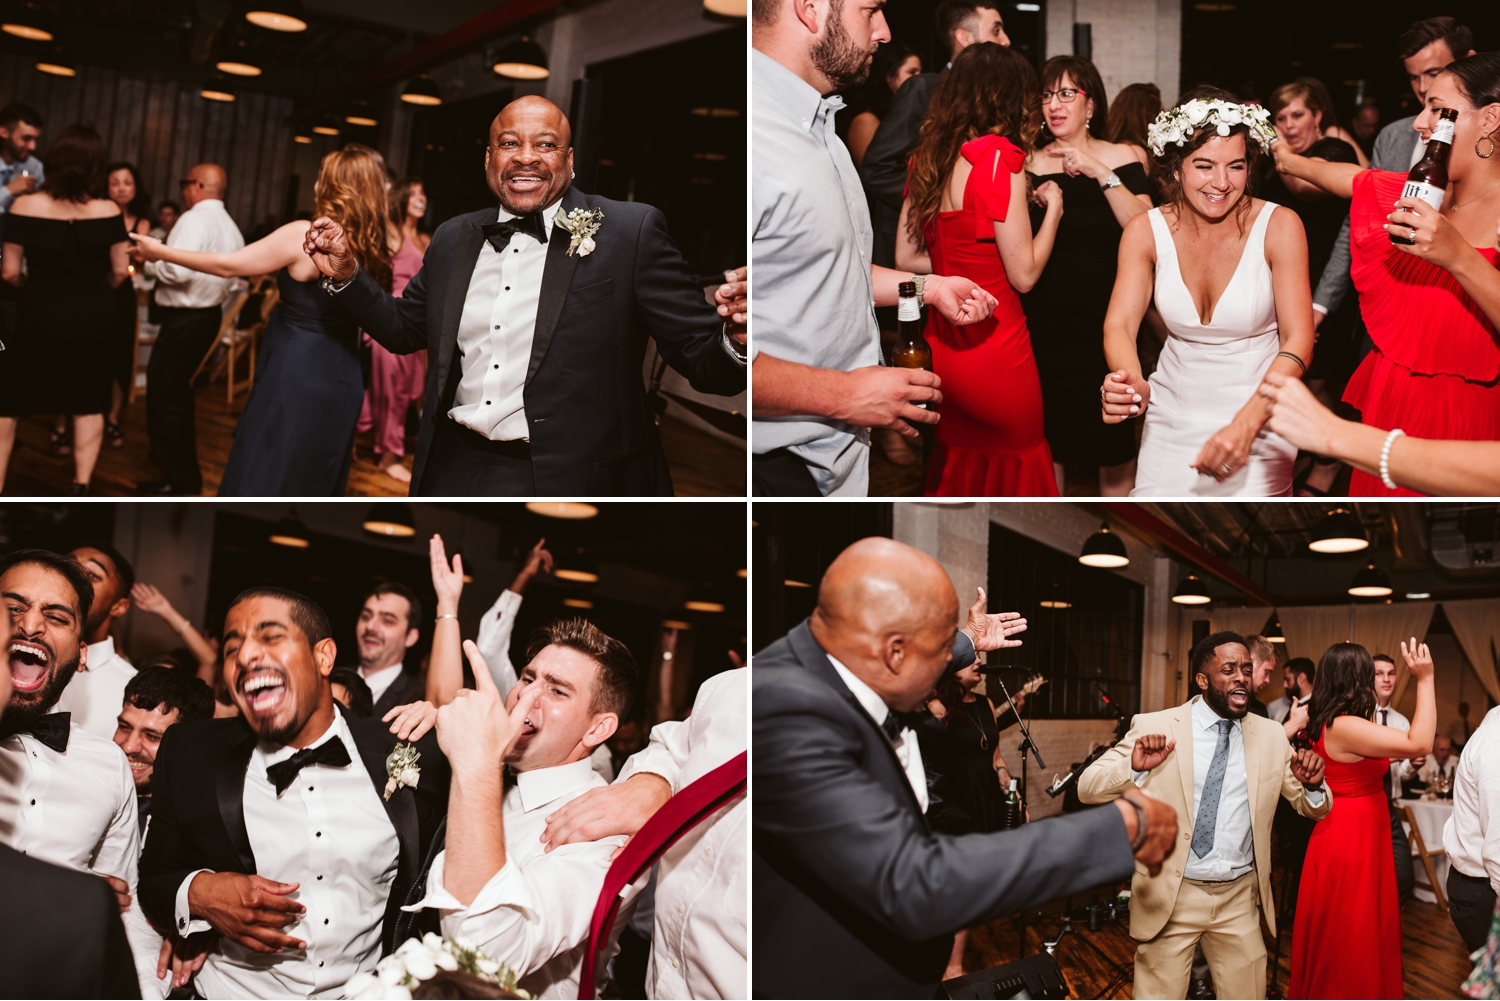 baltimore-maryland-accelerator-space-reception-photobooth-wedding-photography 42.jpg